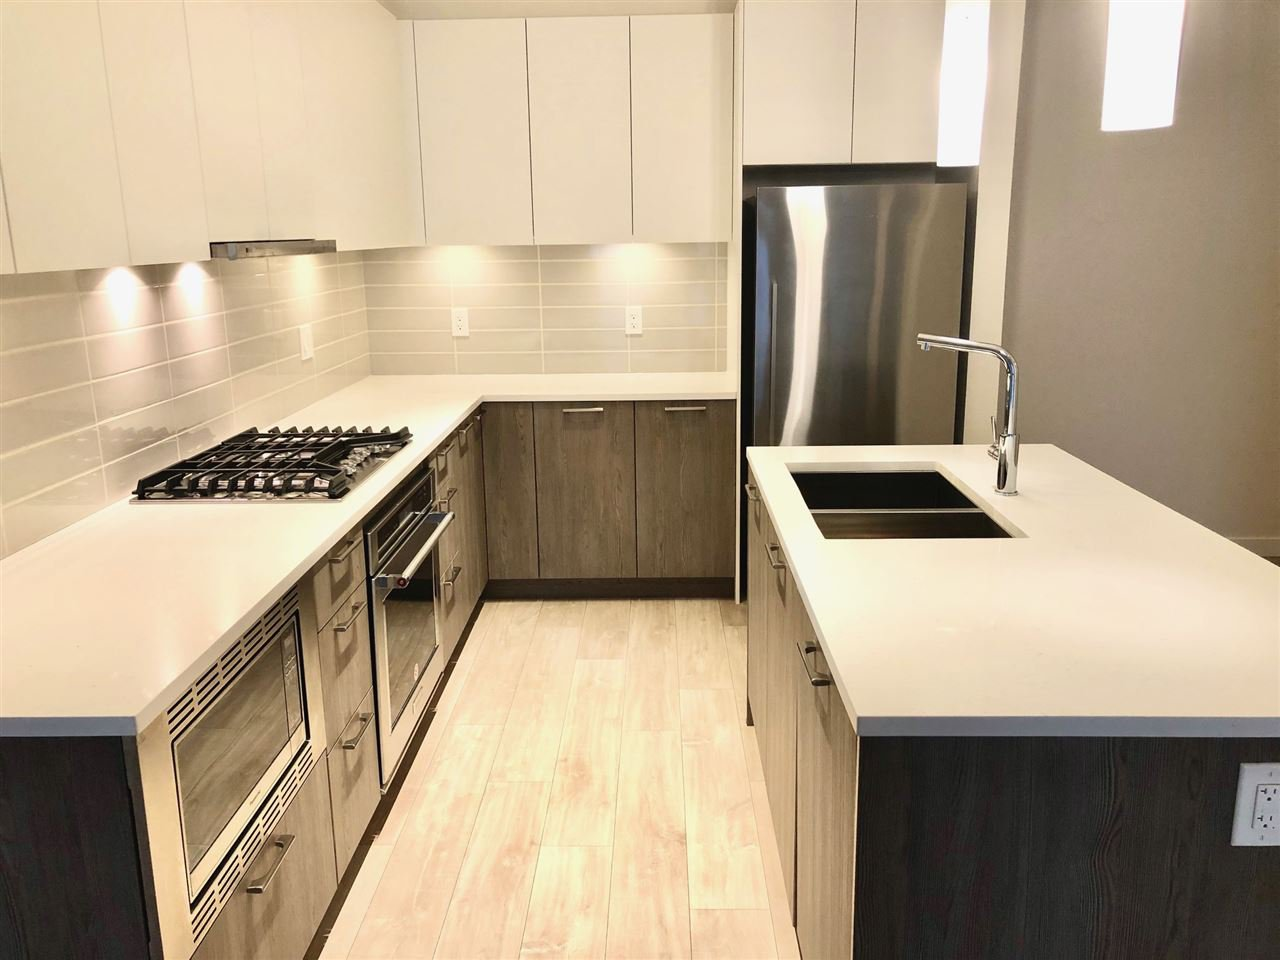 Quartz counters and quality stainless steel appliance package